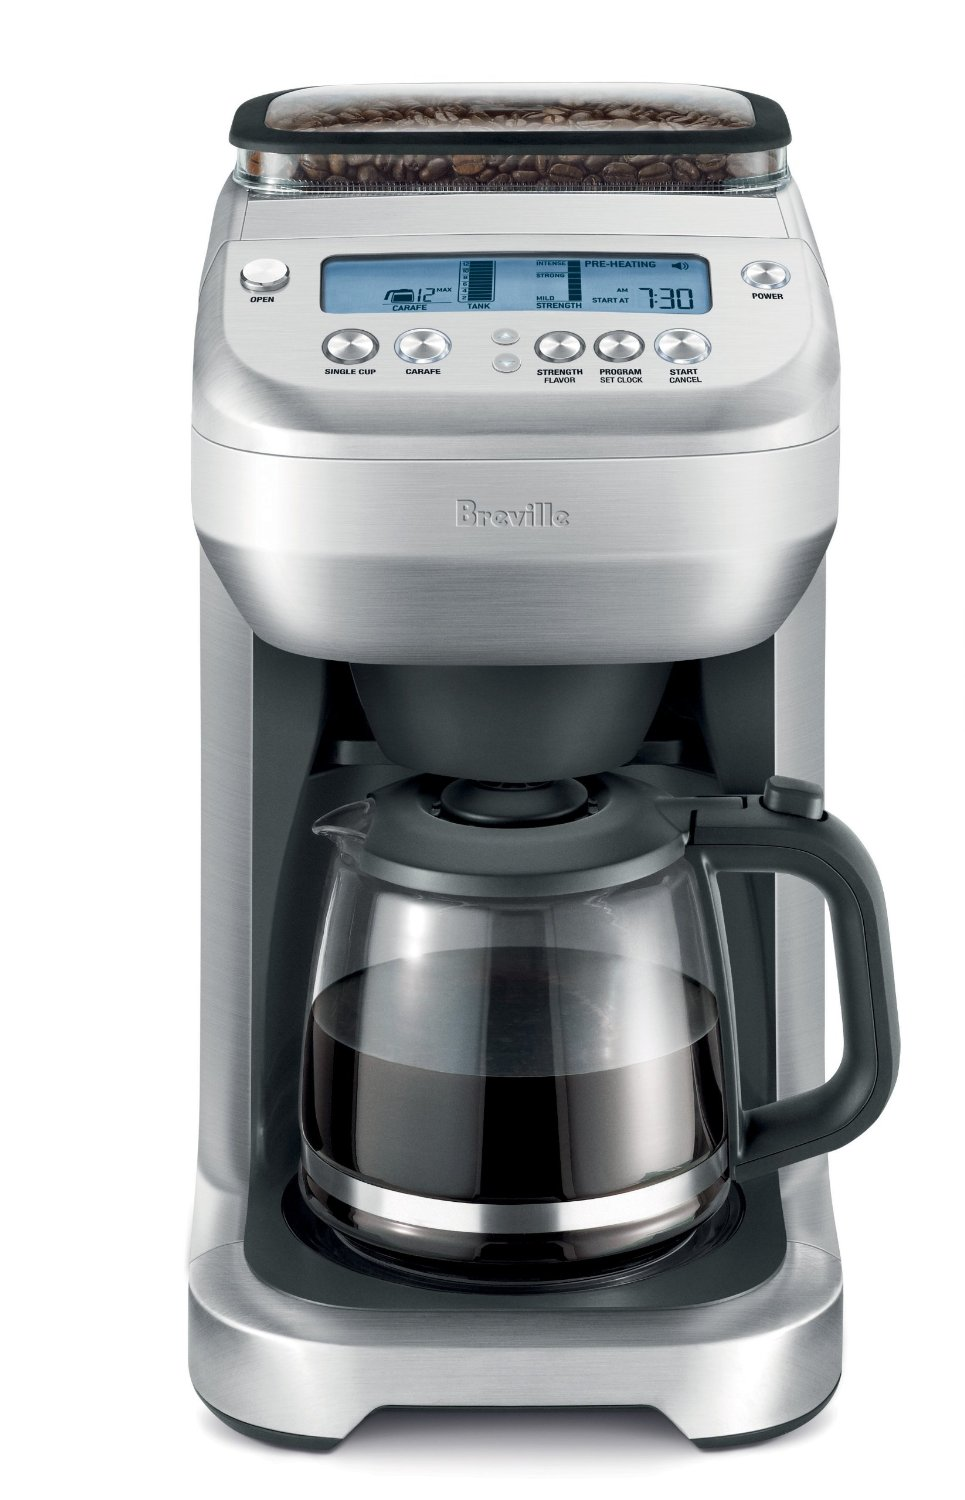 Breville Coffee Maker Replacement : Breville Replacement Carafes